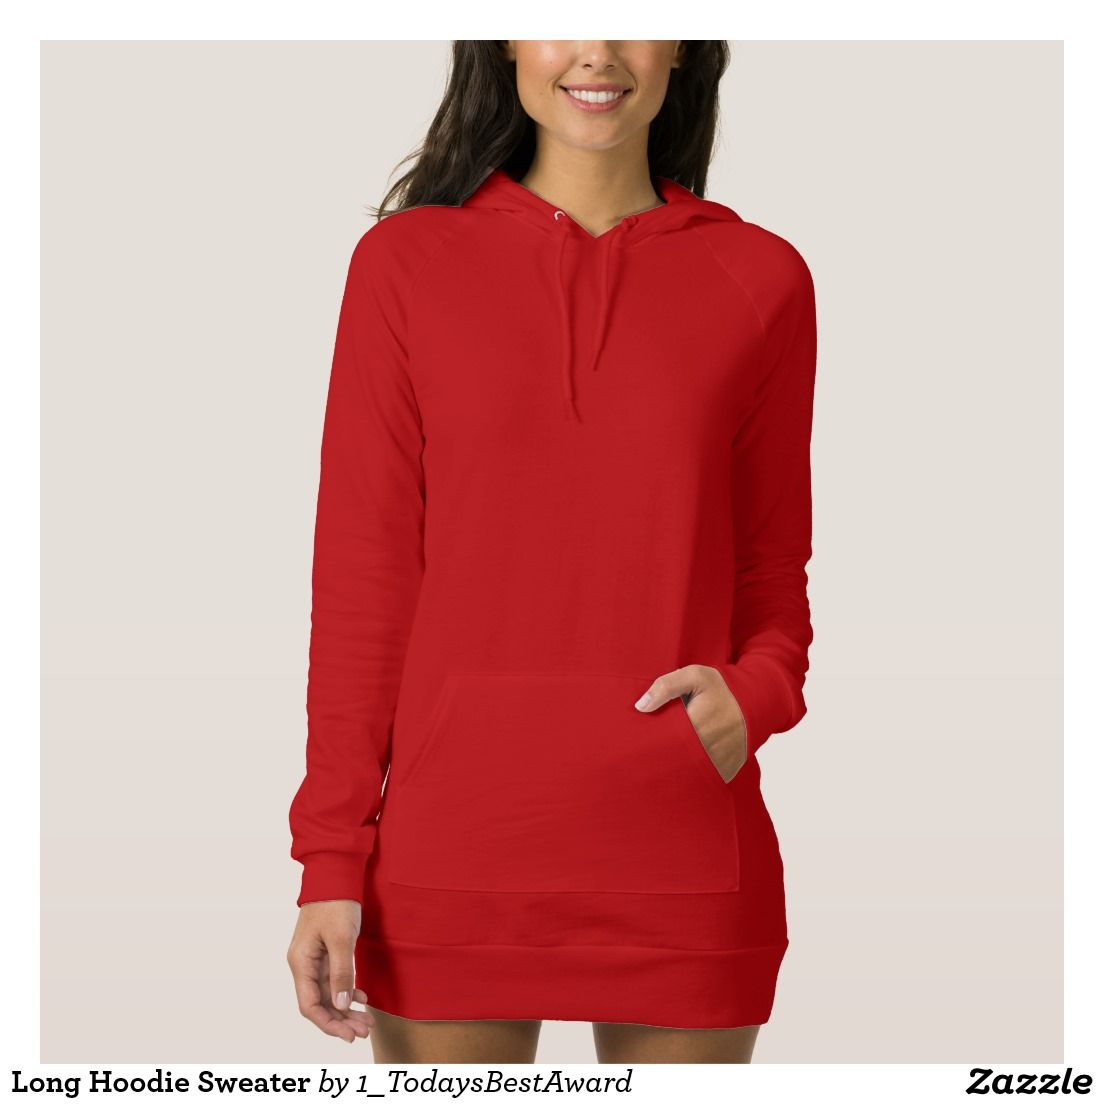 Design t shirt zazzle - Red Long Hoodie Sweater T Shirt Zazzle Hoodie Gravityx9